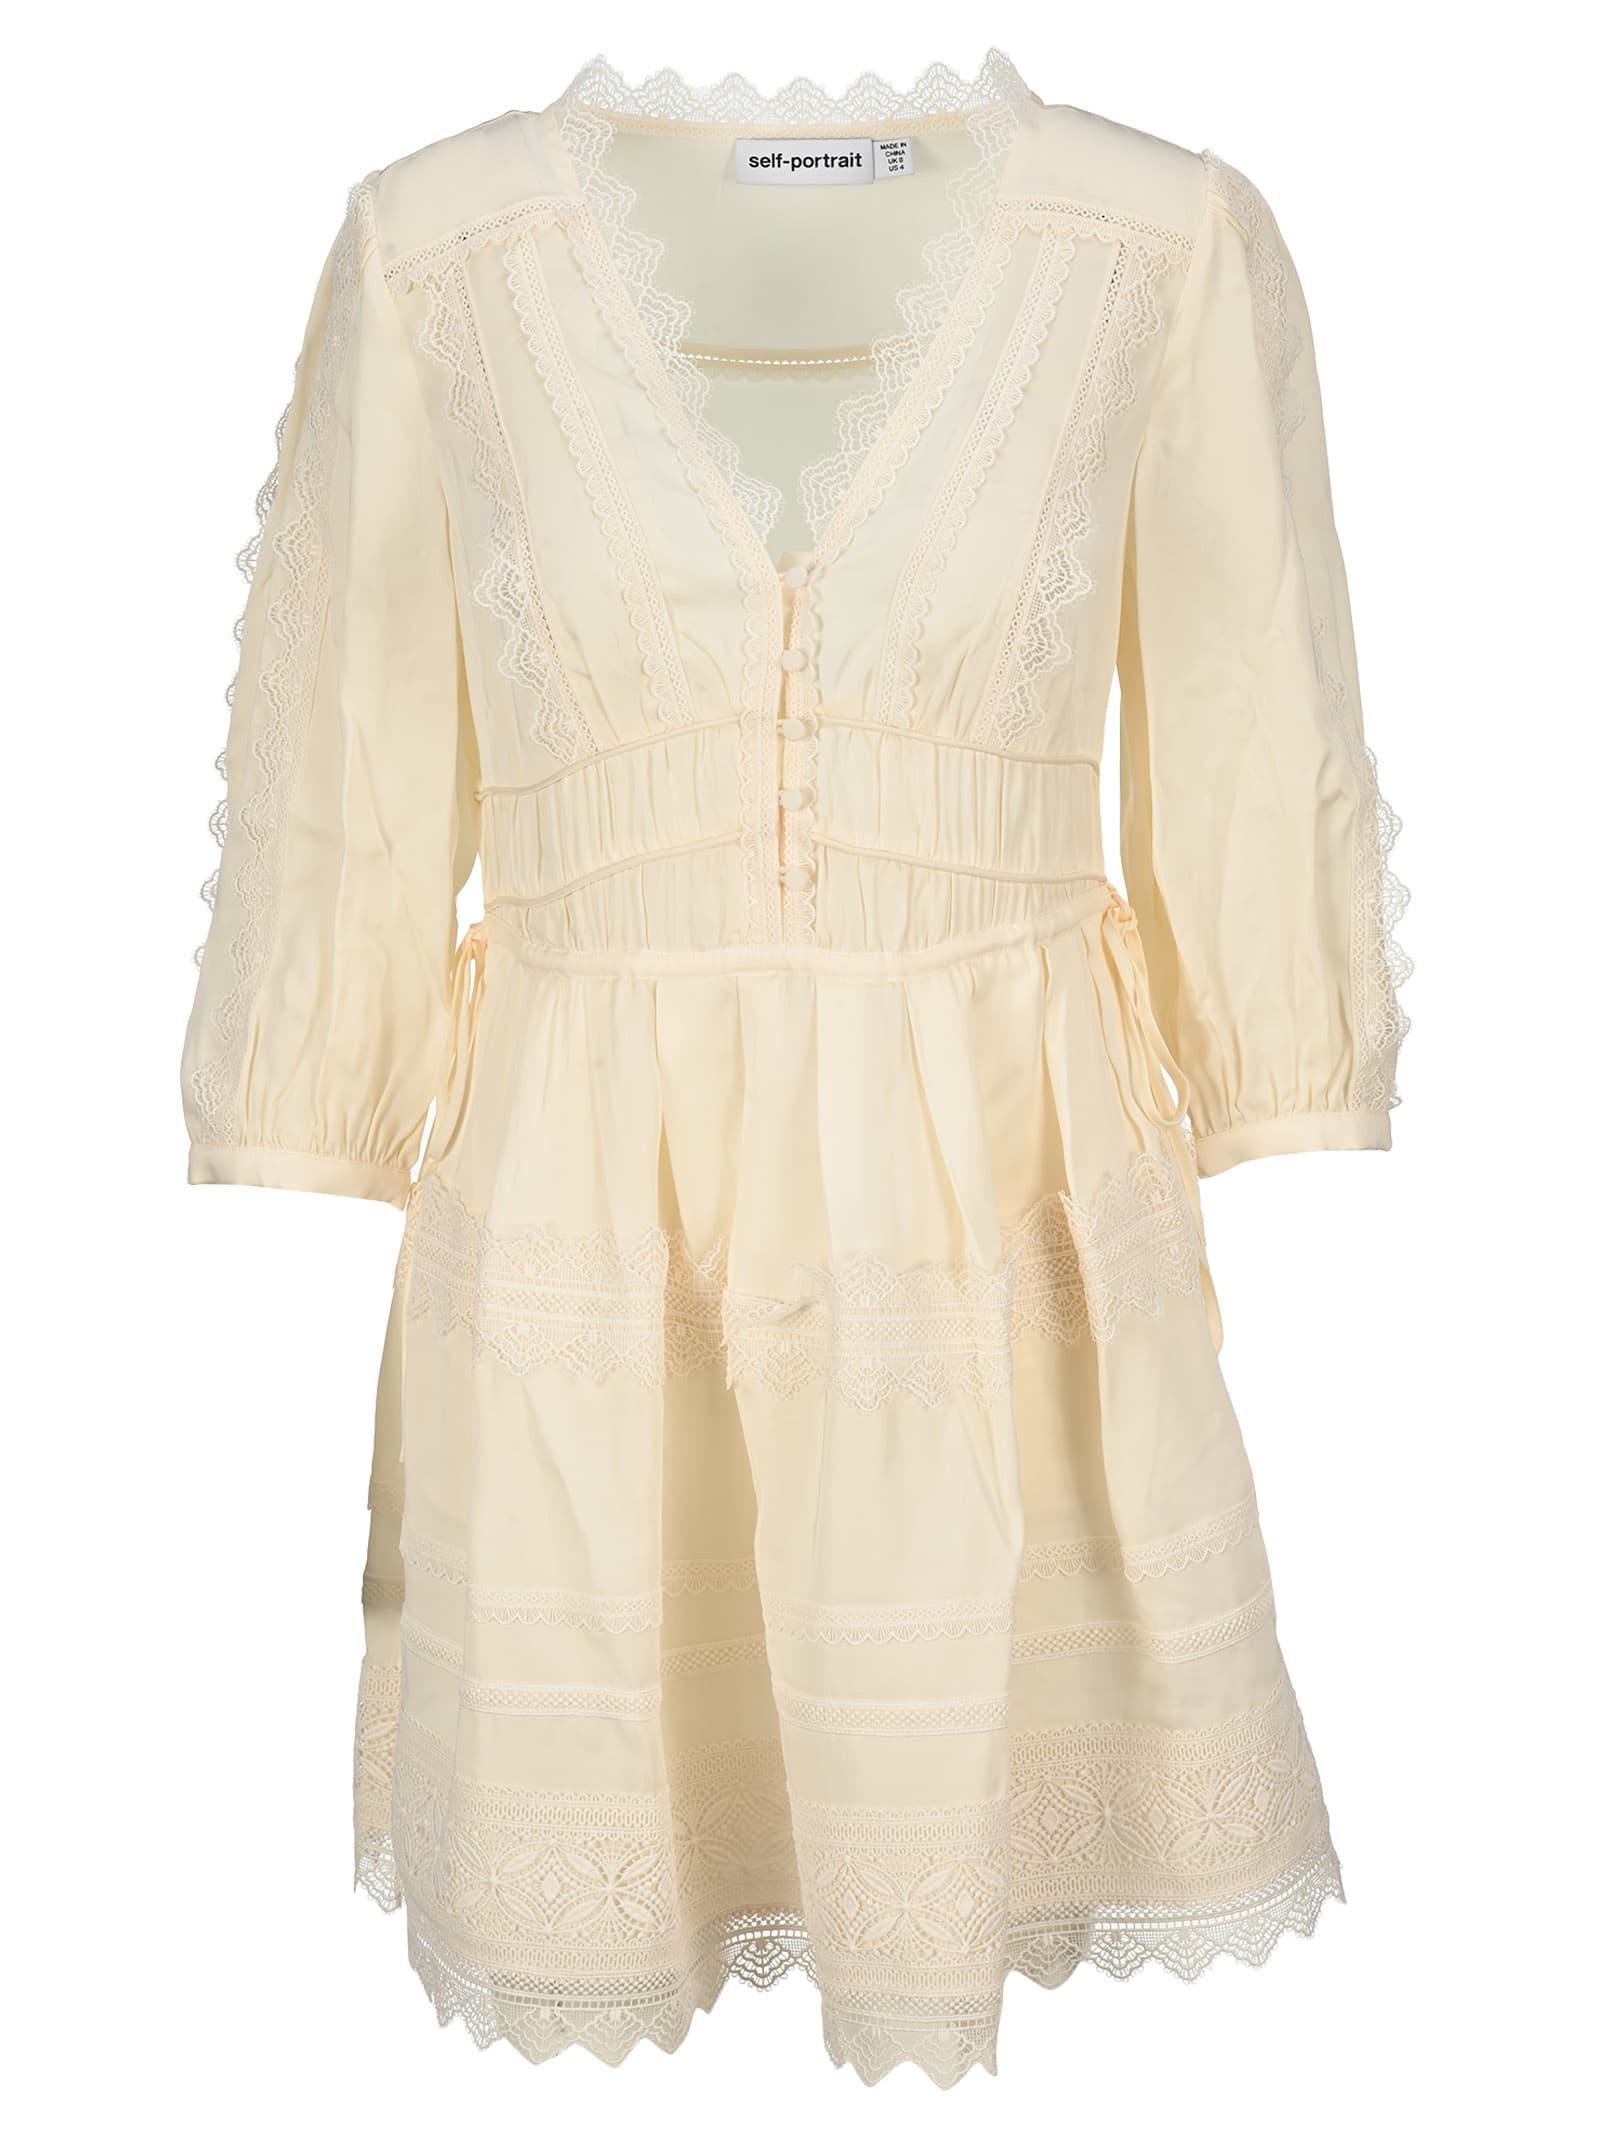 Buy Self Portrait Ivory Lace Trimmed Mini Dress online, shop self-portrait with free shipping